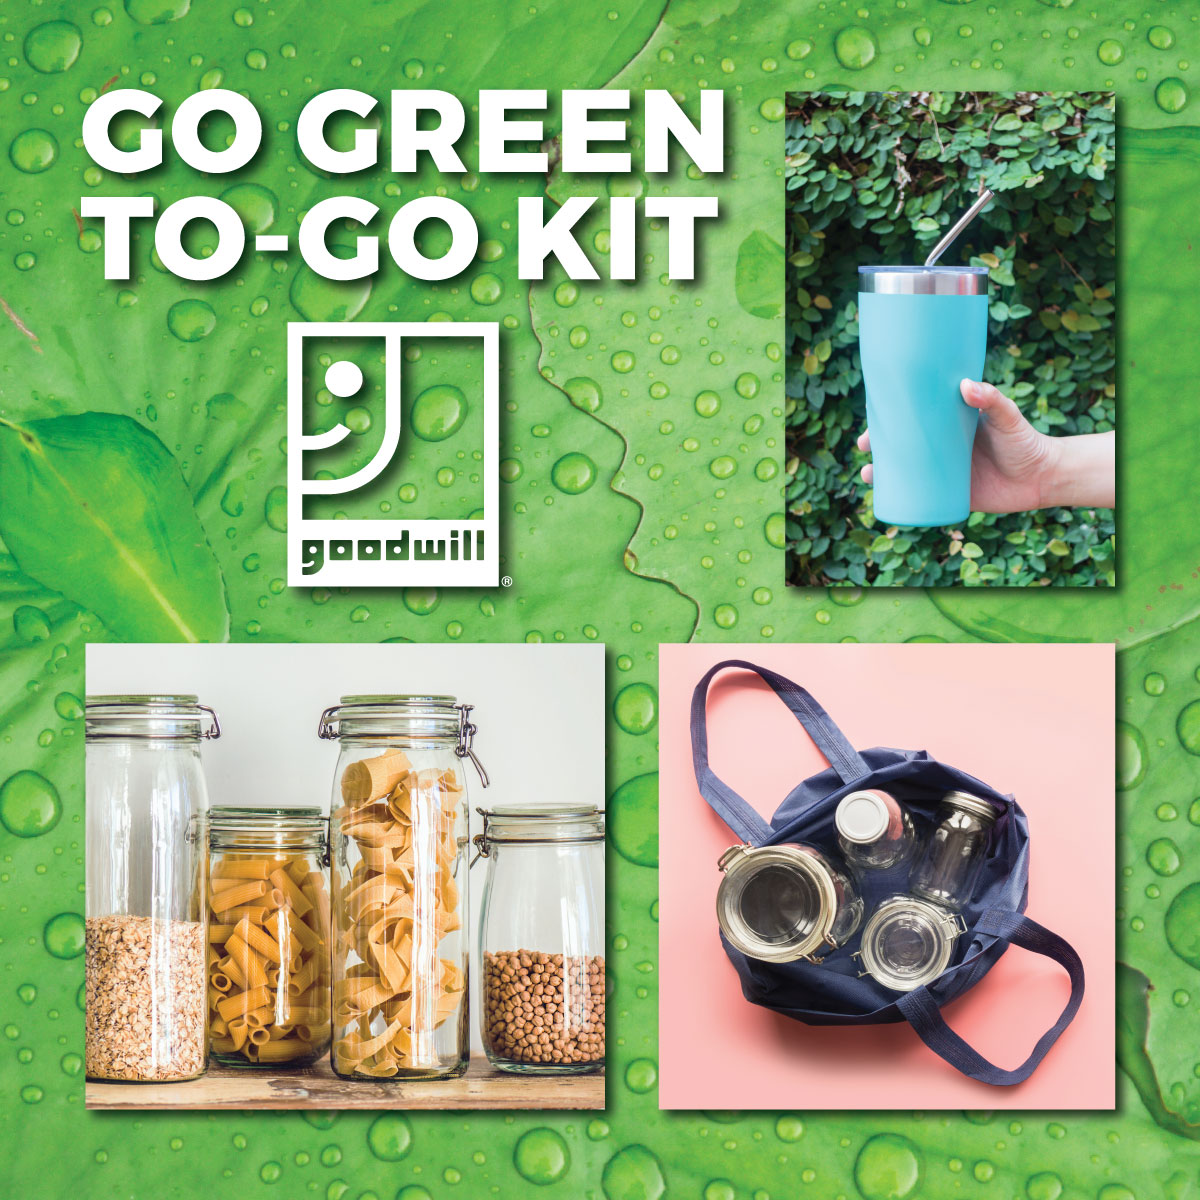 Go Green To-Go Kit